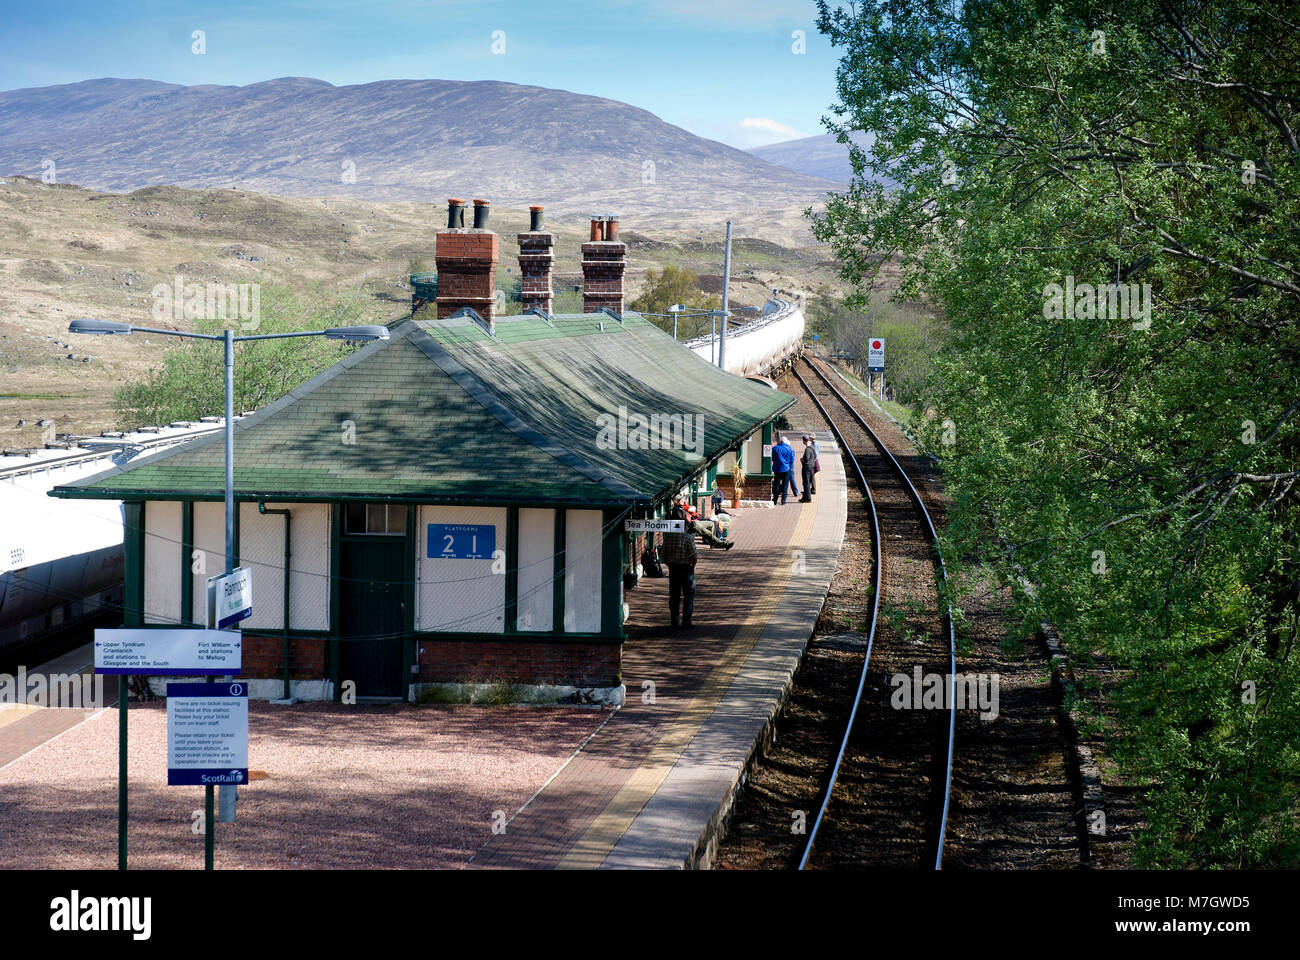 Rannoch Station Tea Room